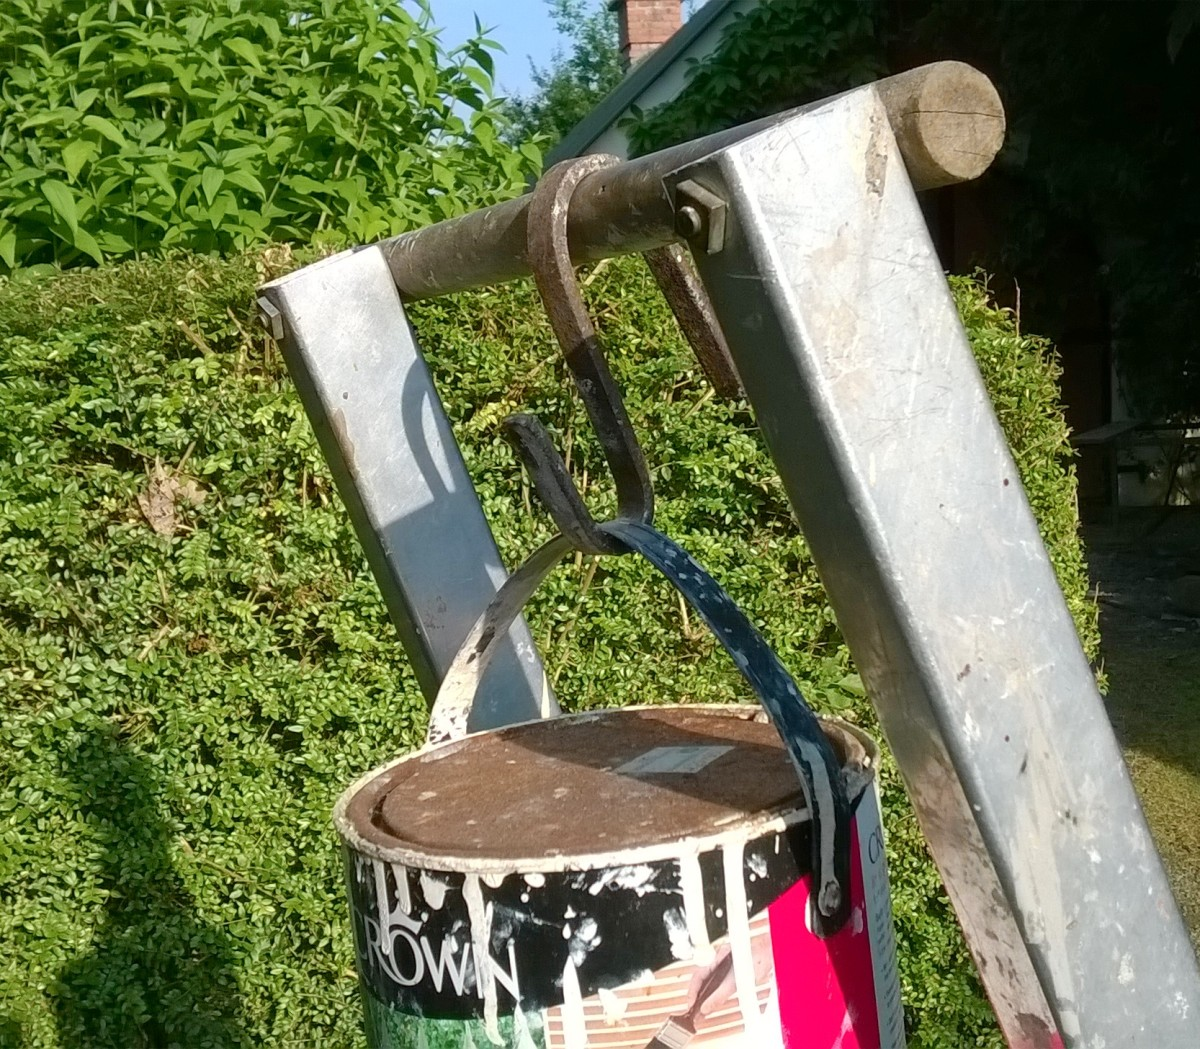 An 'S' hook is useful for holding cans of paint, buckets etc